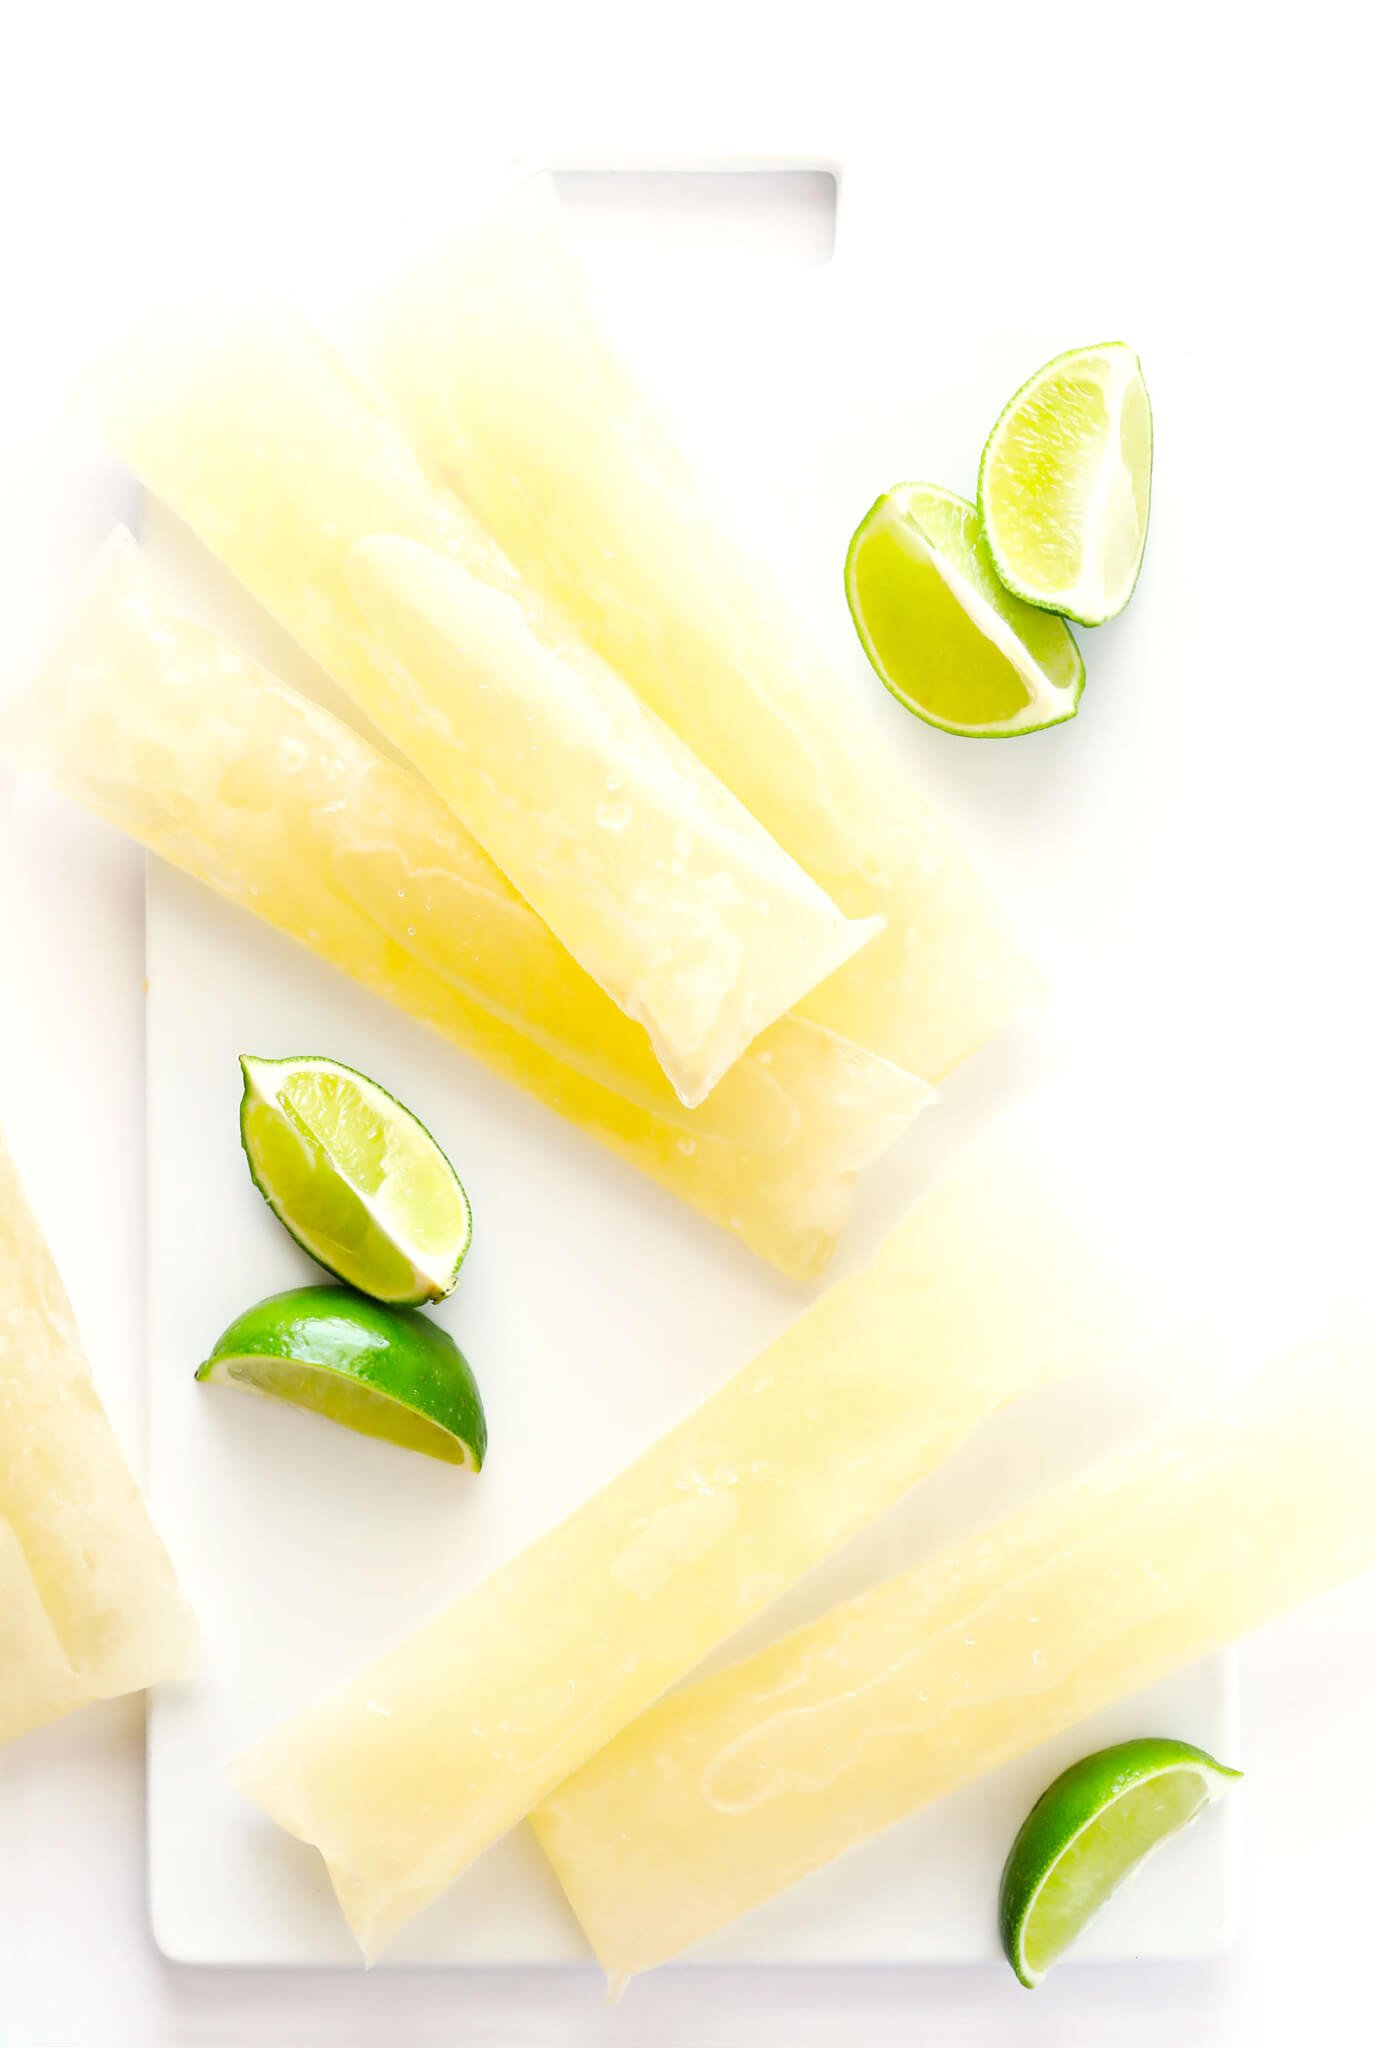 These Frozen Margarita Ice Pops are quick and easy to make, can be made with just about any kind of margarita recipe, and taste so refreshing and delicious. They're the perfect popsicles for summer! | gimmesomeoven.com